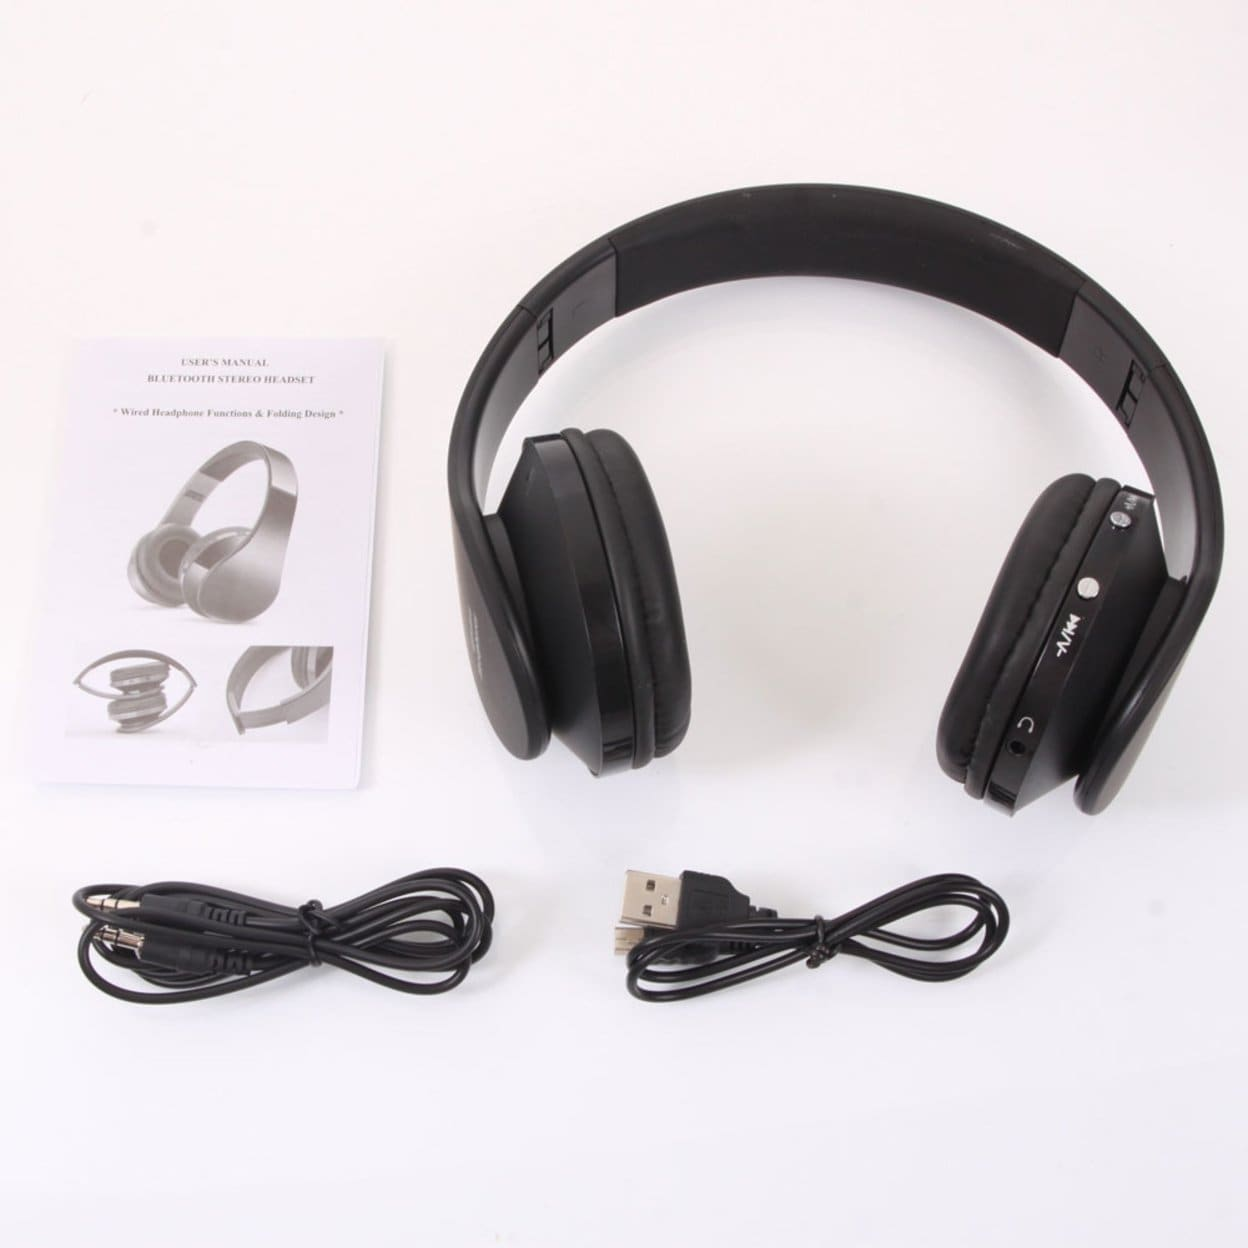 Shop Nx 8252 Hot Foldable Wireless Stereo Sports Bluetooth Headphone Headset With Mic For Iphone Ipad Pc Free Shipping On Orders Over 45 Overstock 27483116